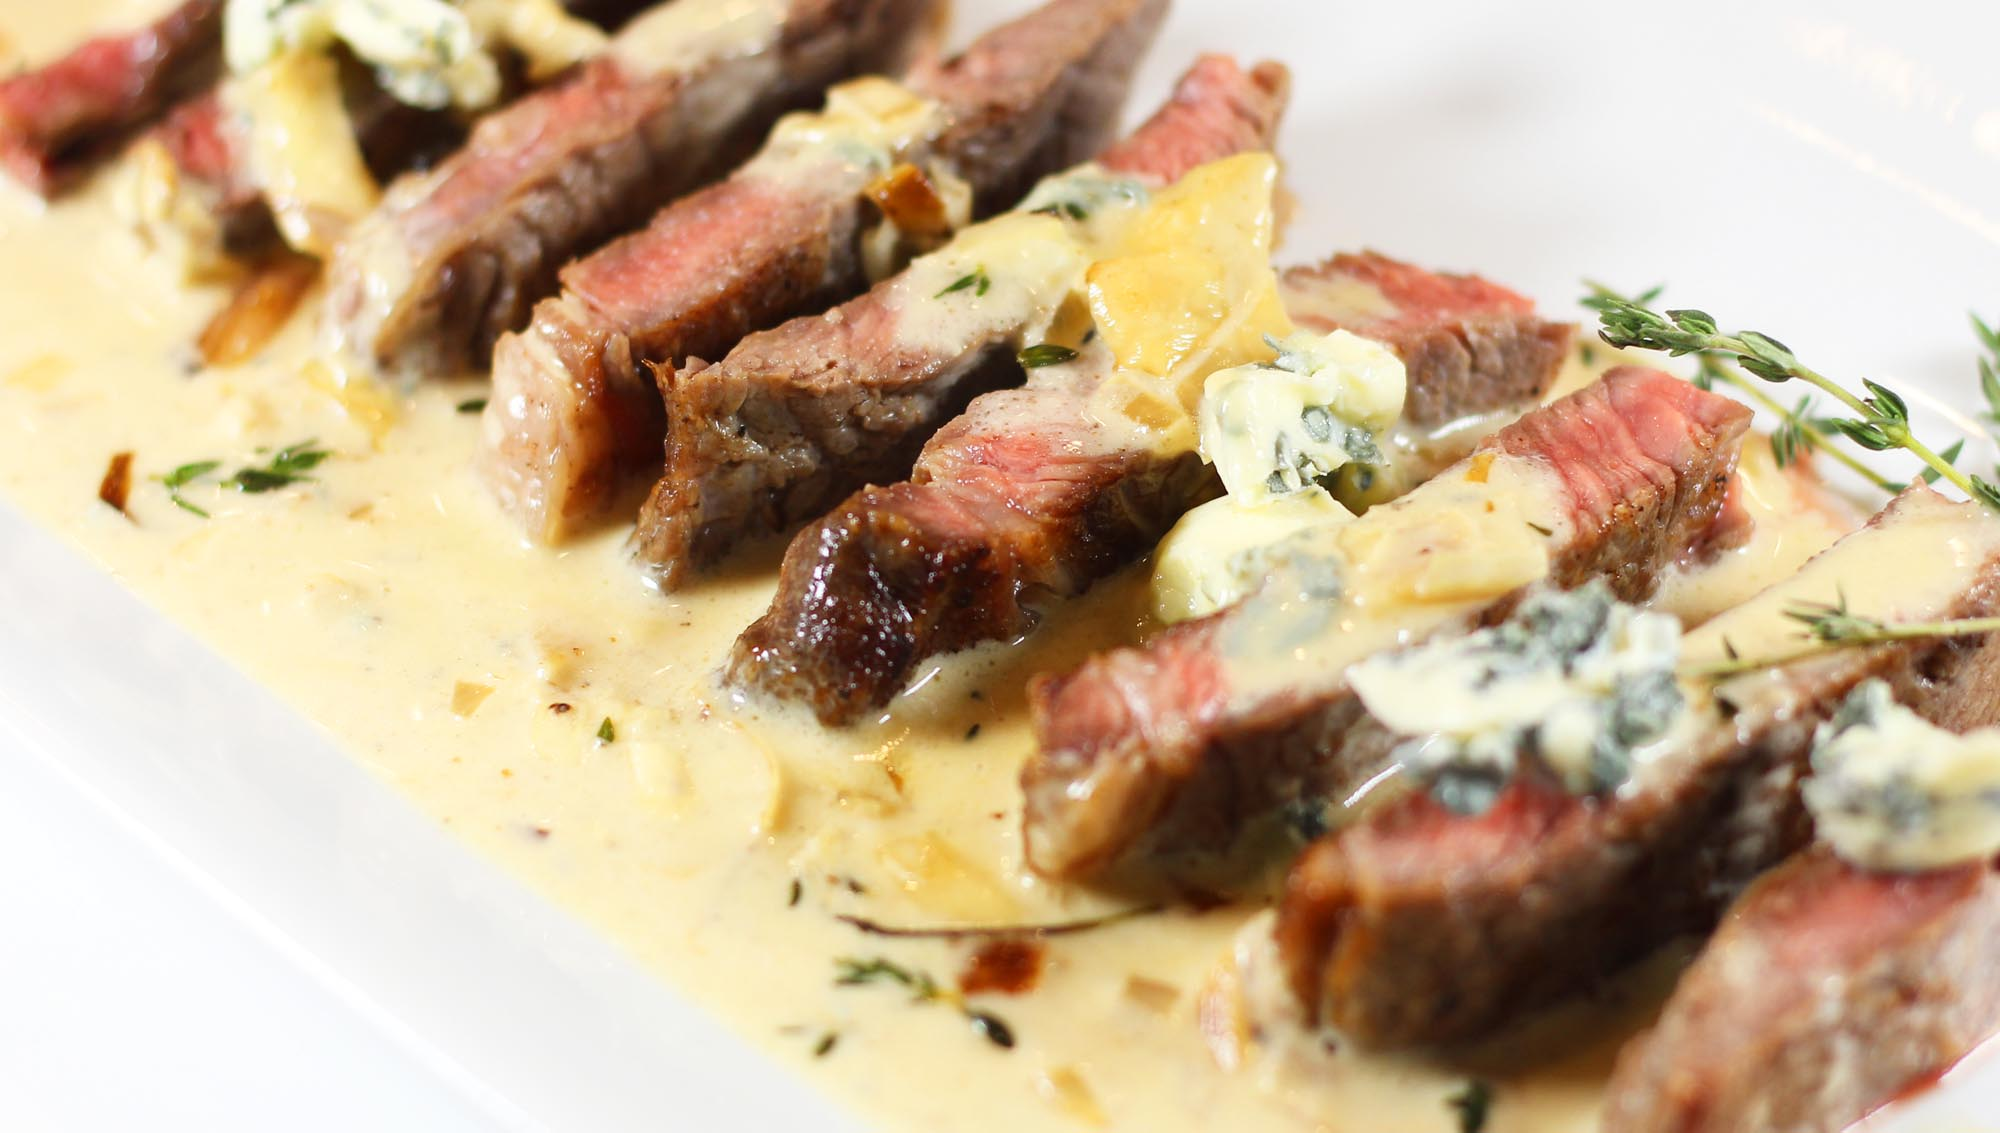 steak blue cheese garlic cream